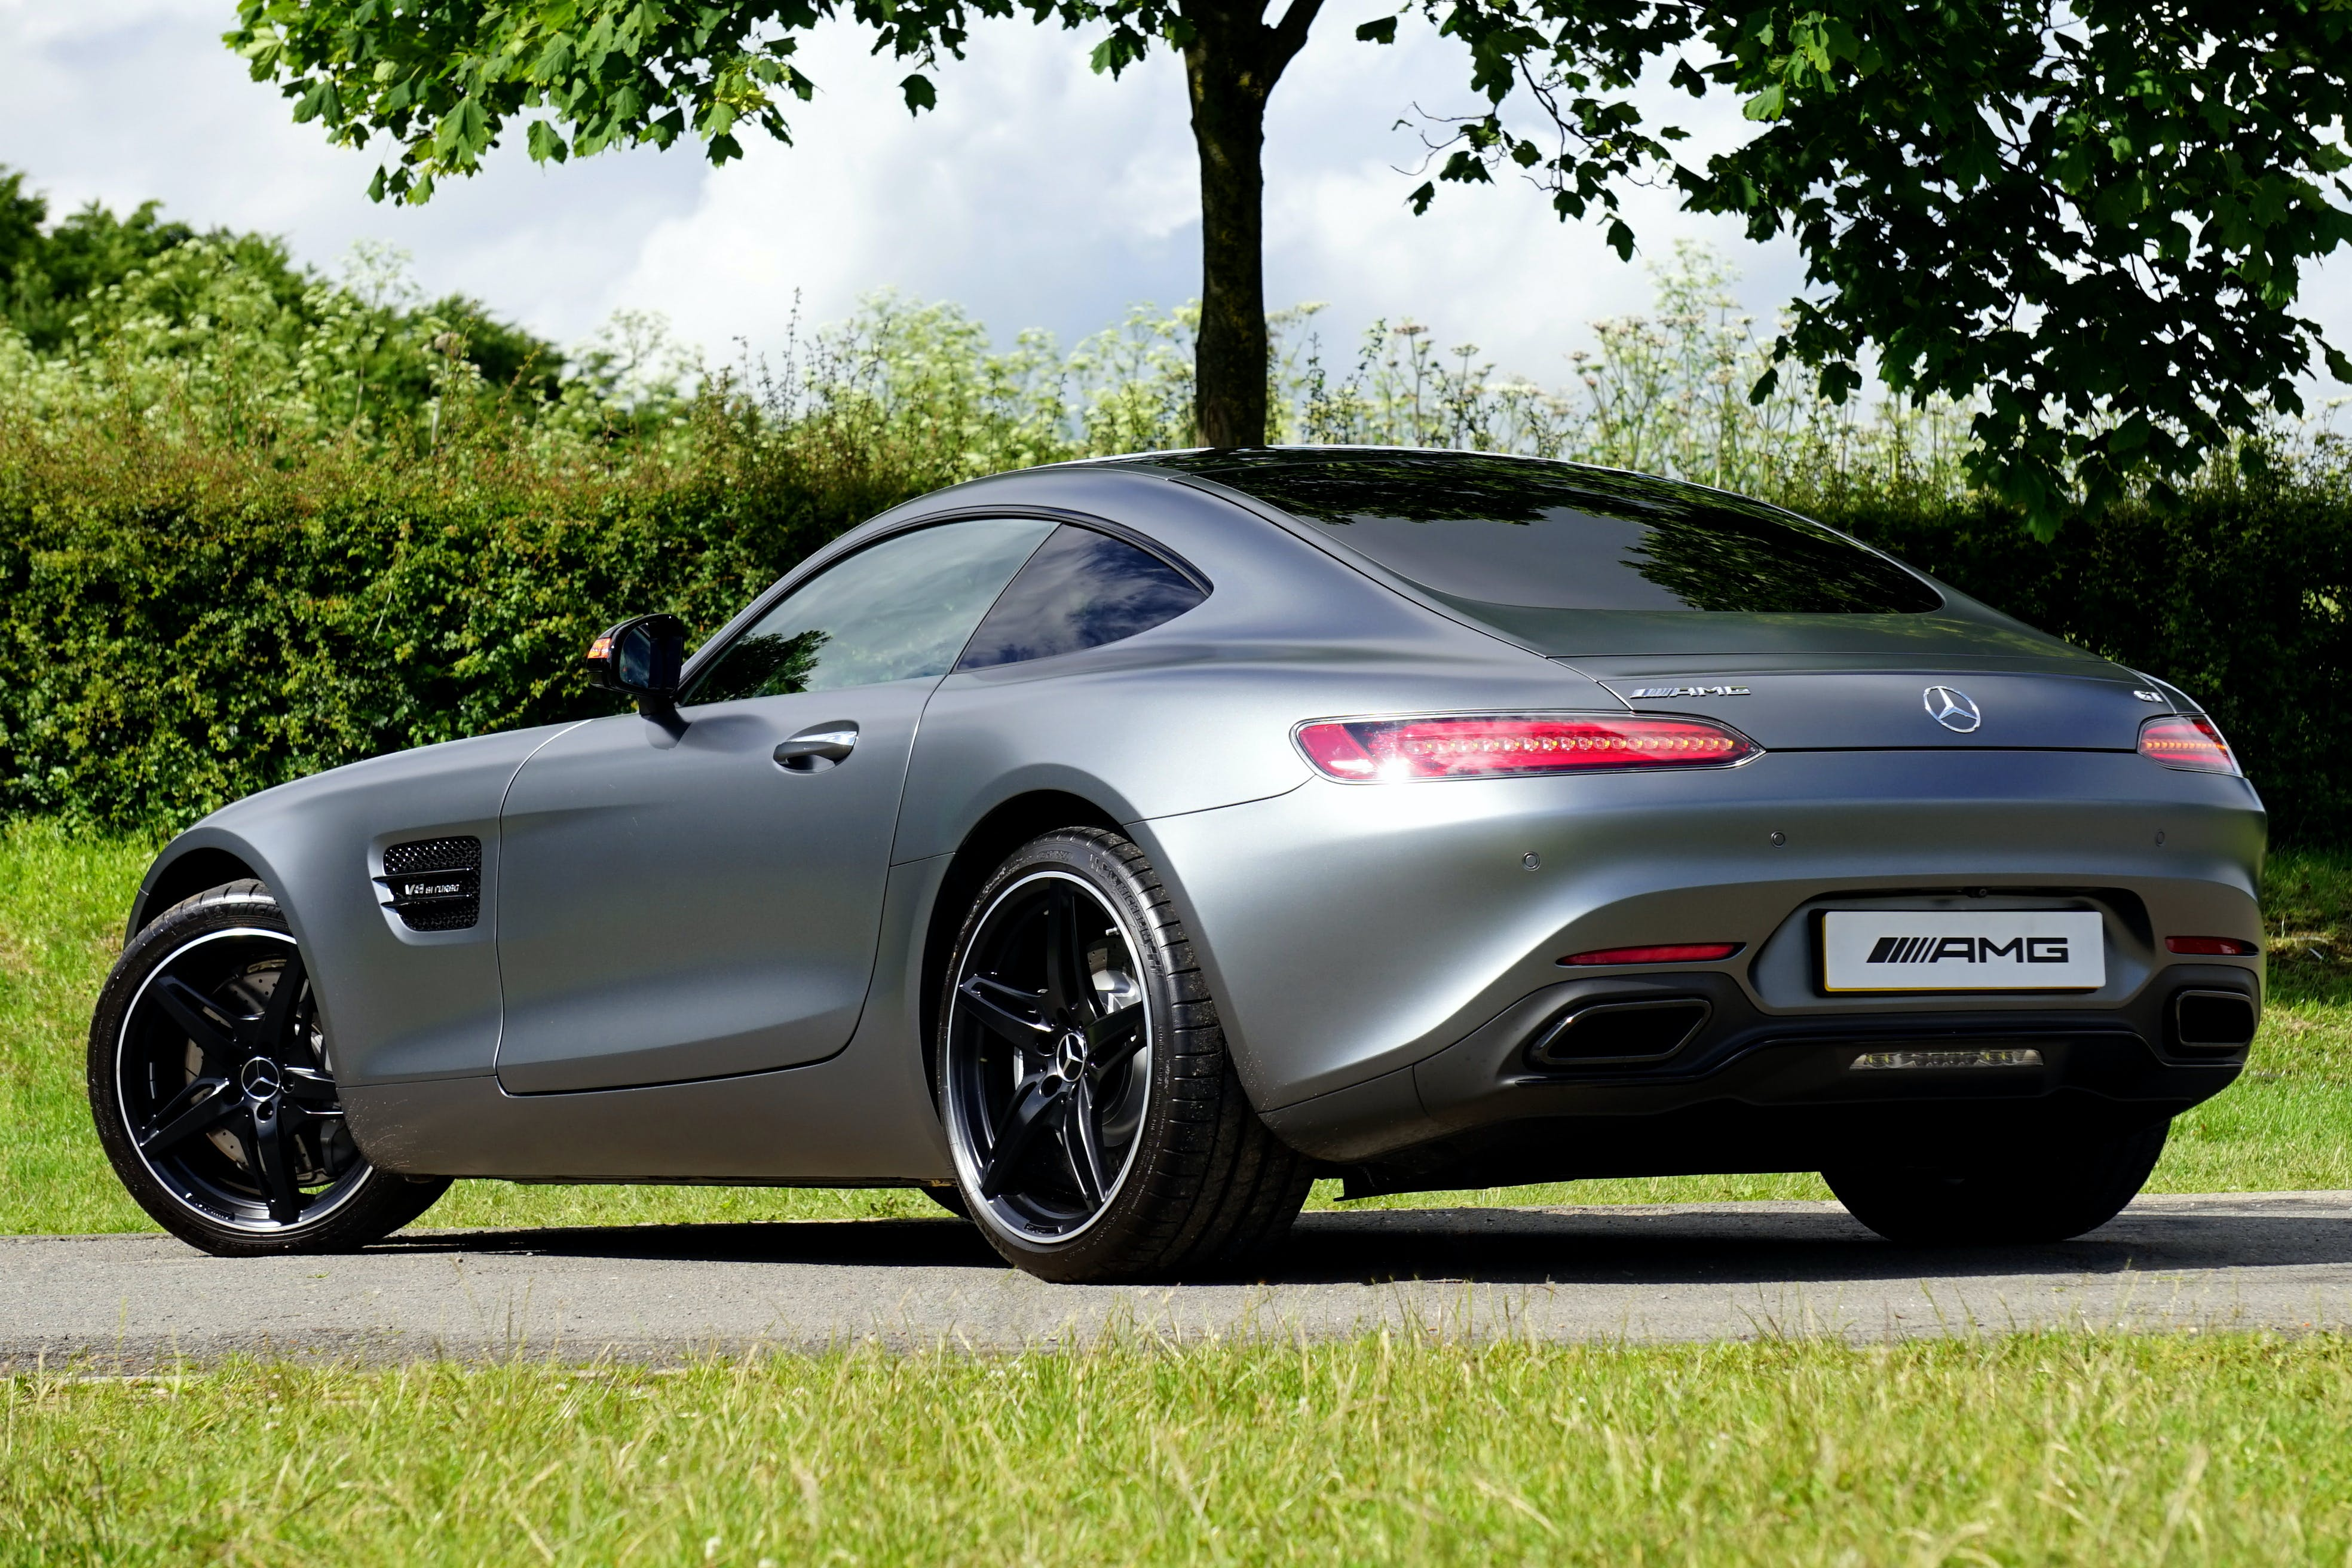 Gray Mercedes-benz Amg Coupe Parked Near Tree